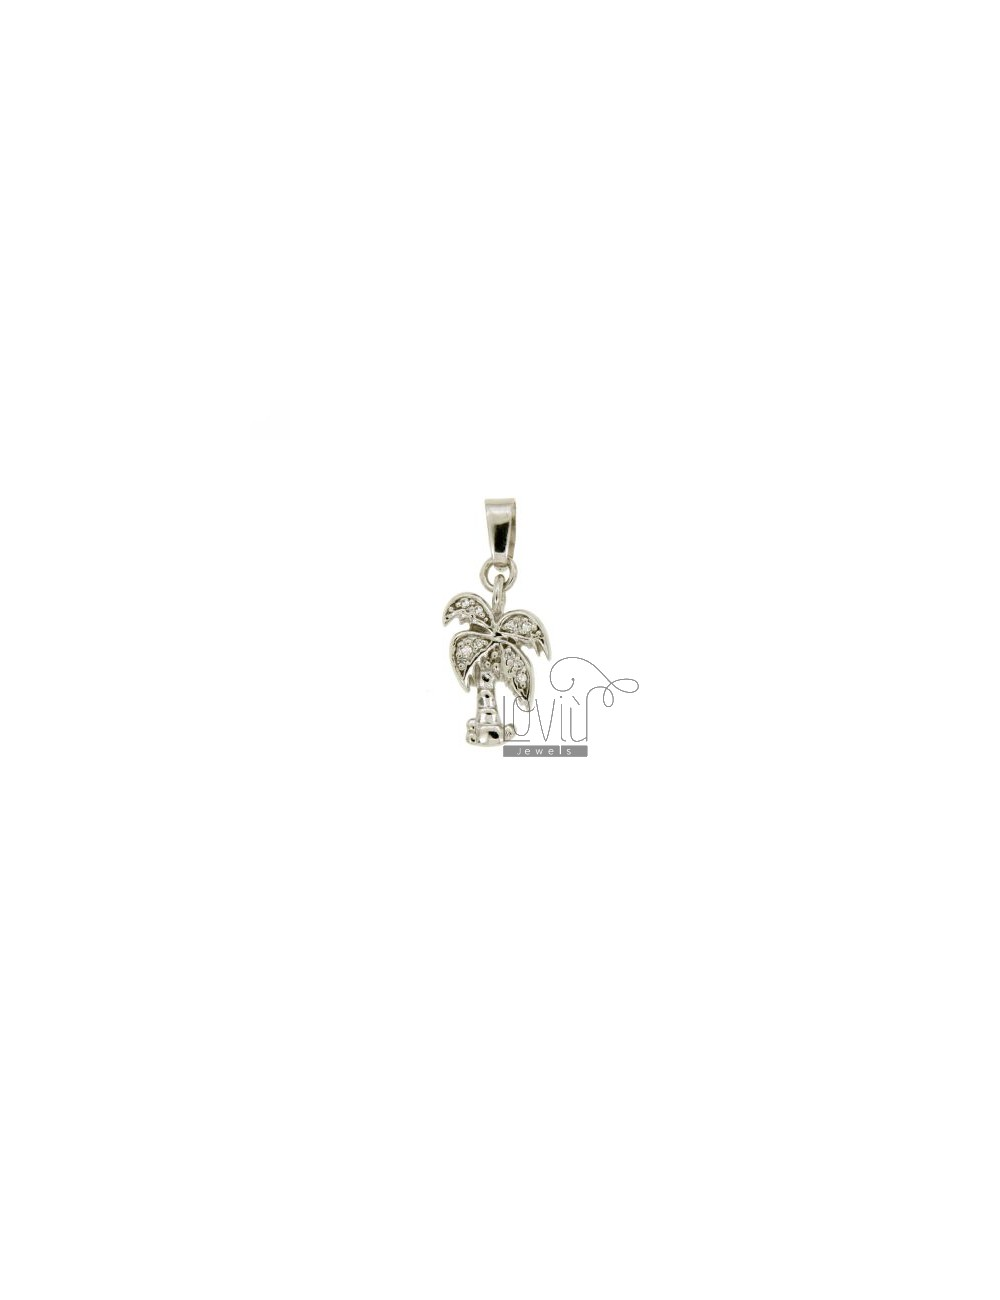 PENDANT SILVER PALM MM 18x11 TIT 925 ‰ AND ZIRCONIA